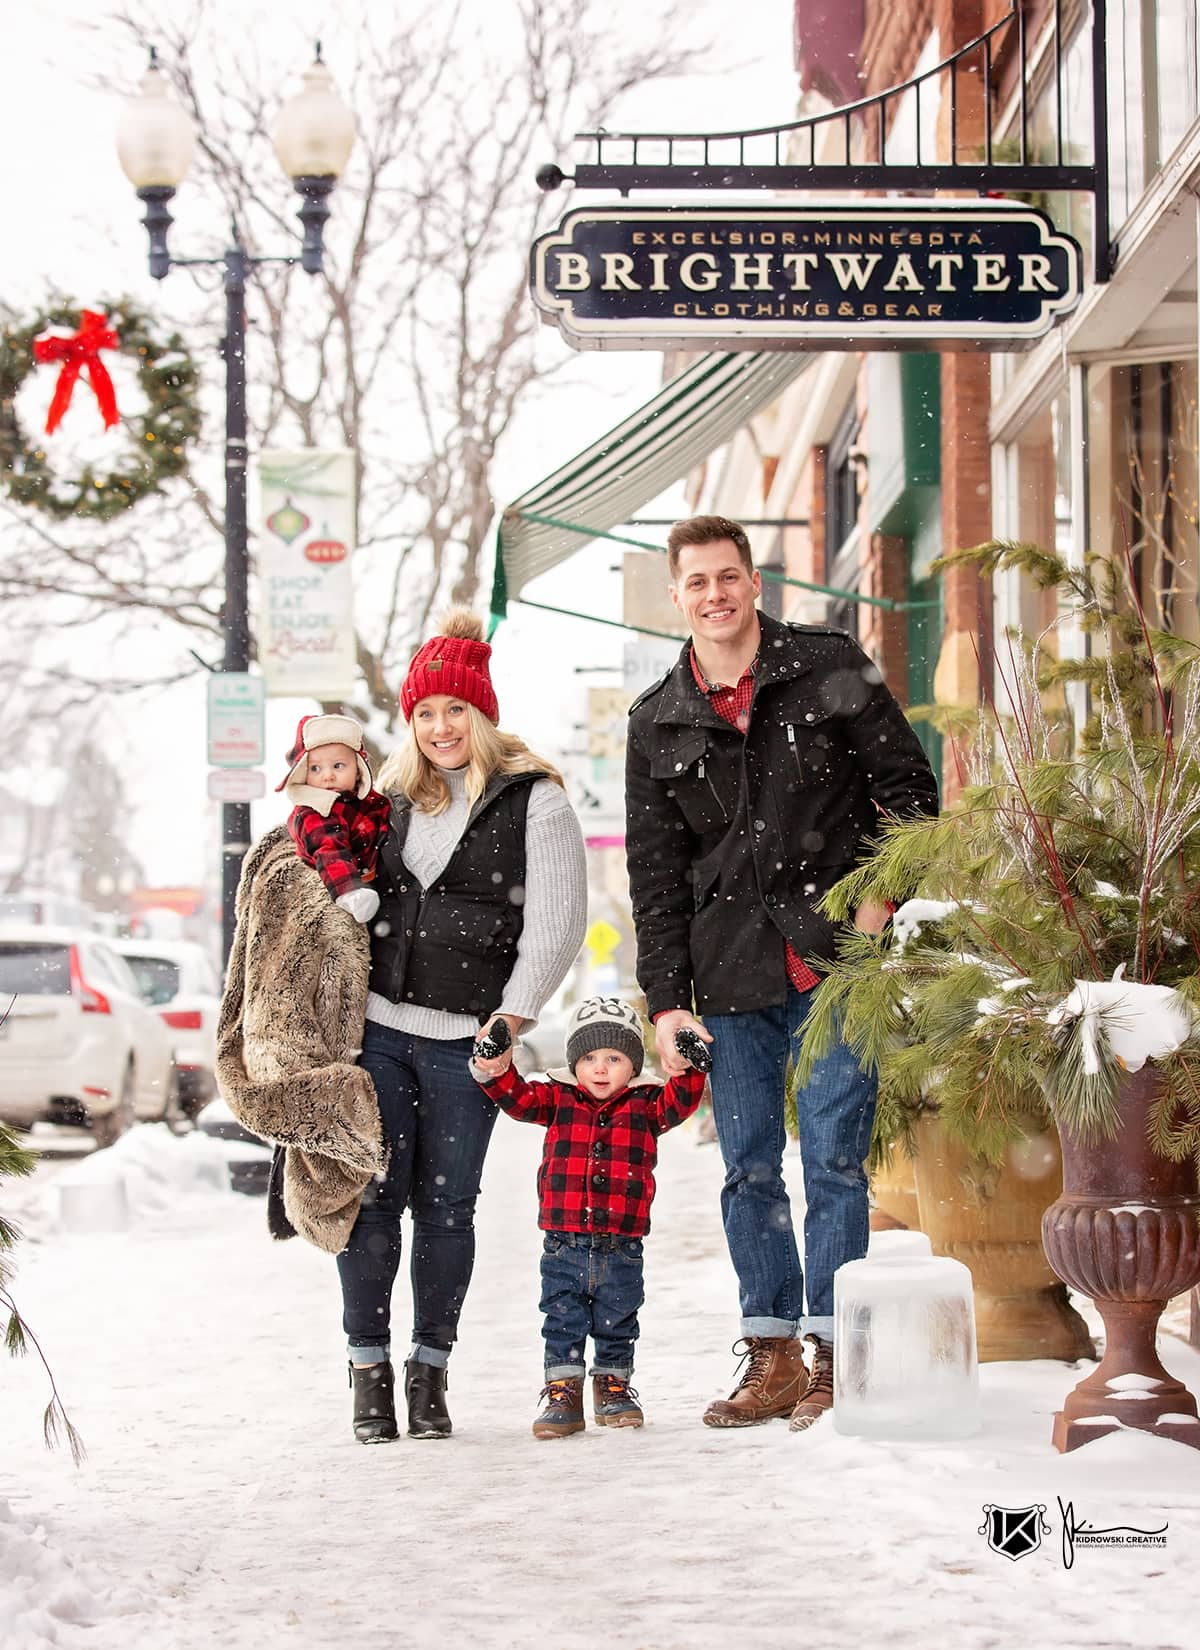 Young family walking the streets of Excelsior, Minnesota during a winter snowstorm at Christmas time.